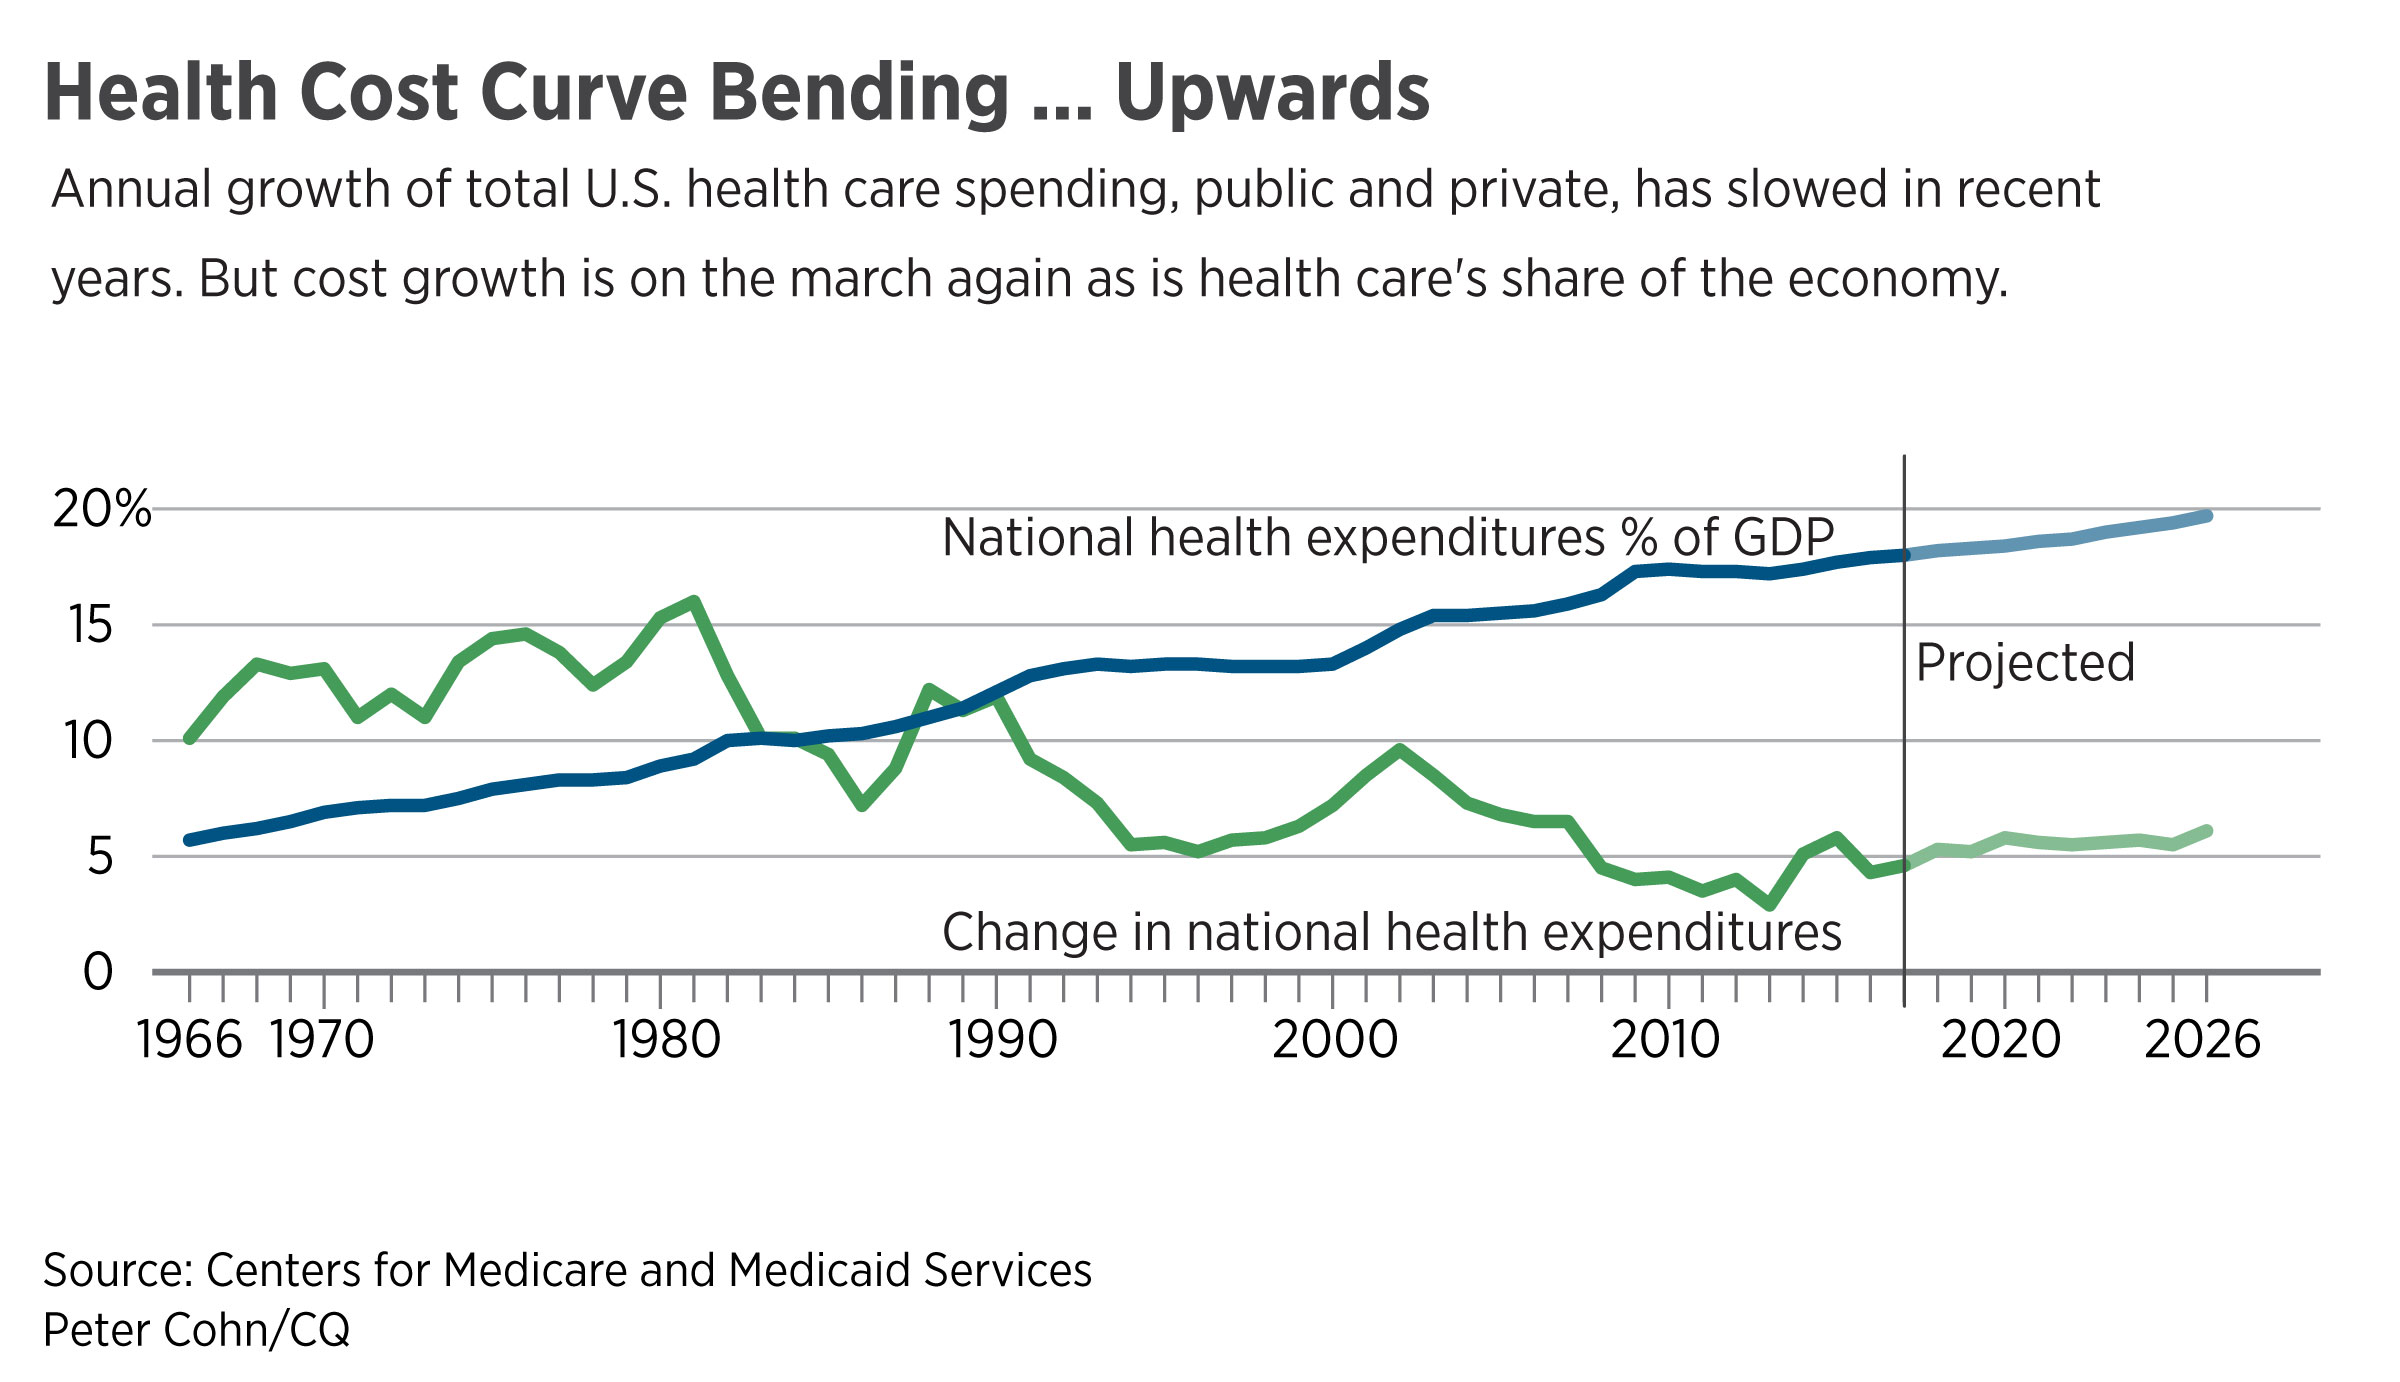 Health Cost Curve Bending ... Upwards